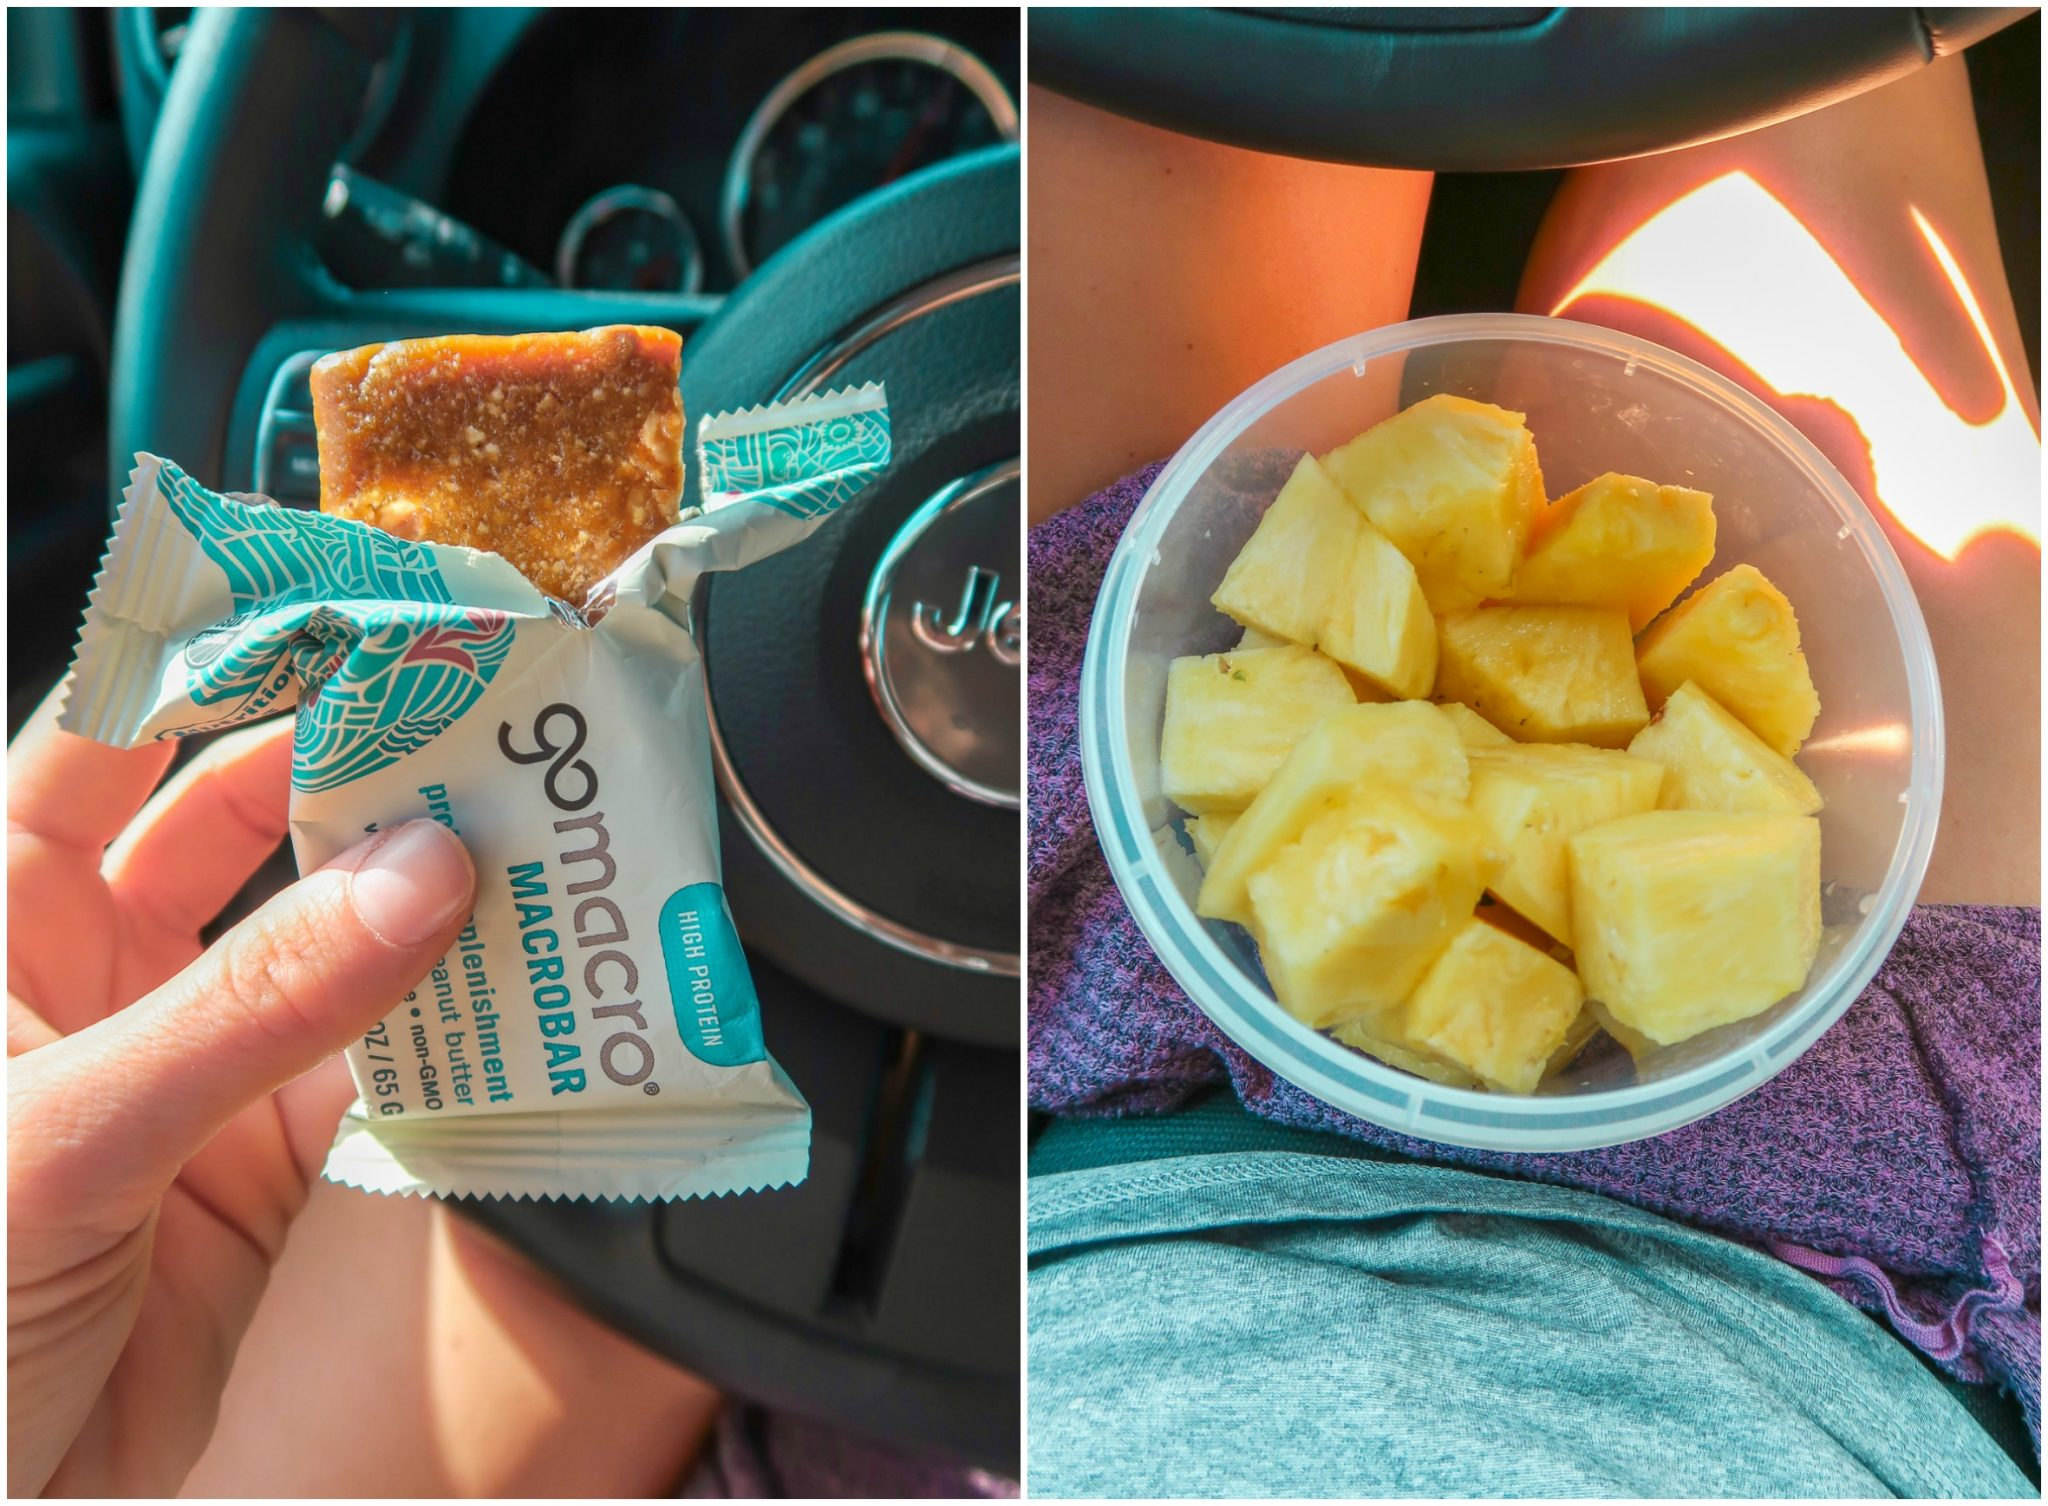 road trip snacks protein bar plant based gluten free pineapple dairy free go macro bars protein food road trip packing healthy on the go